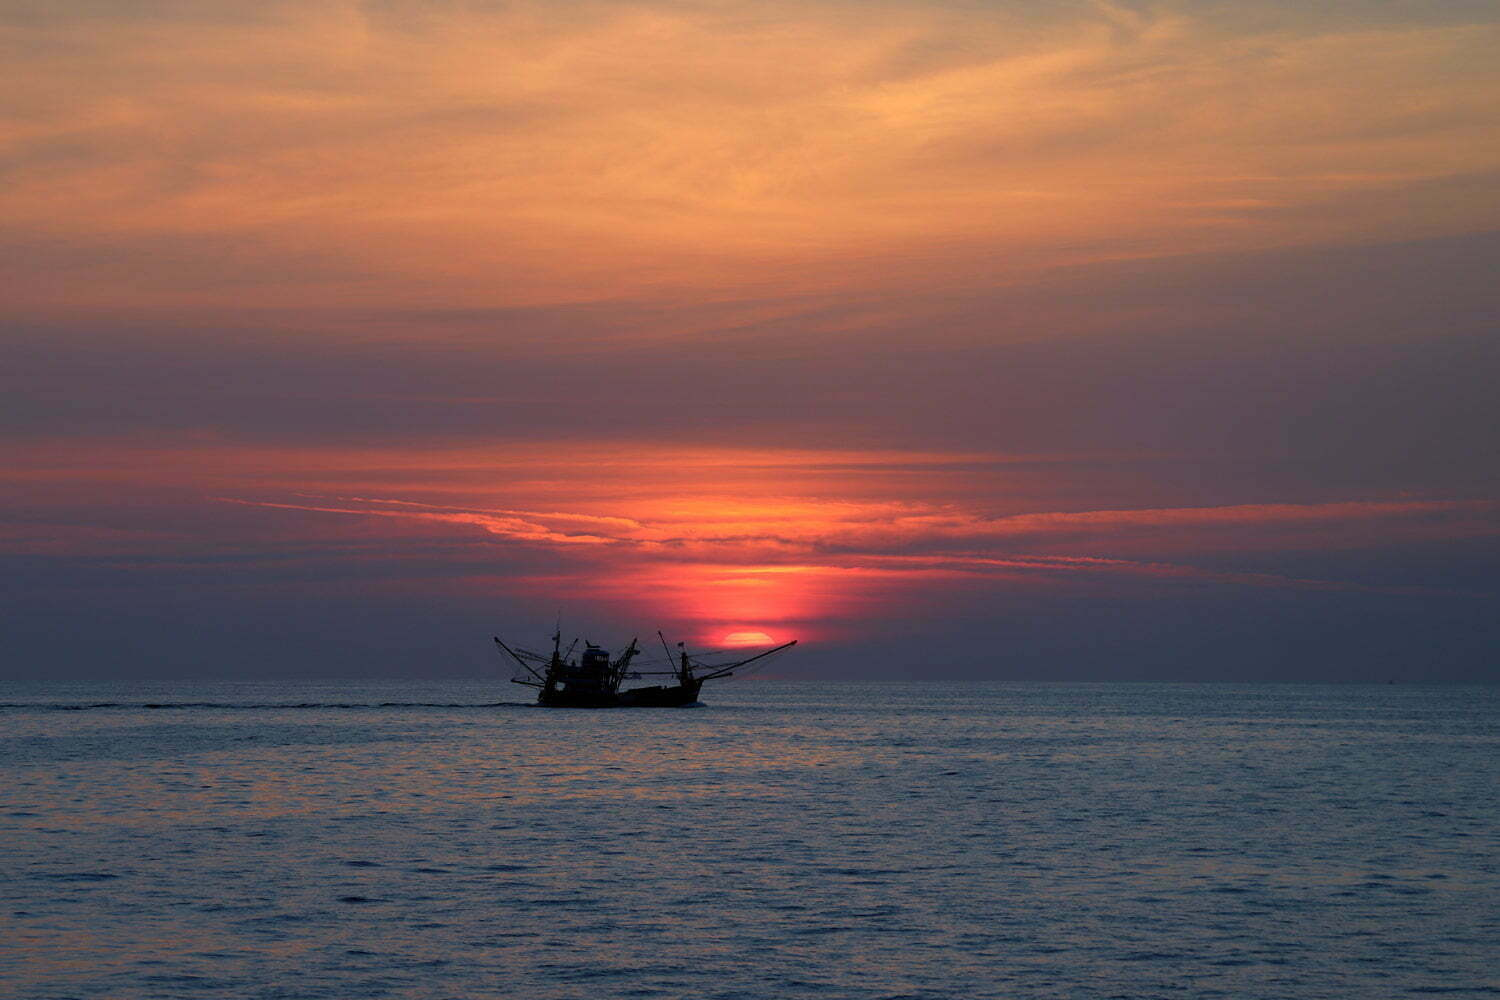 The sun sets on the ocean horizon next to a shrimper vessel rigged to start fishing off the coast of Thailand.